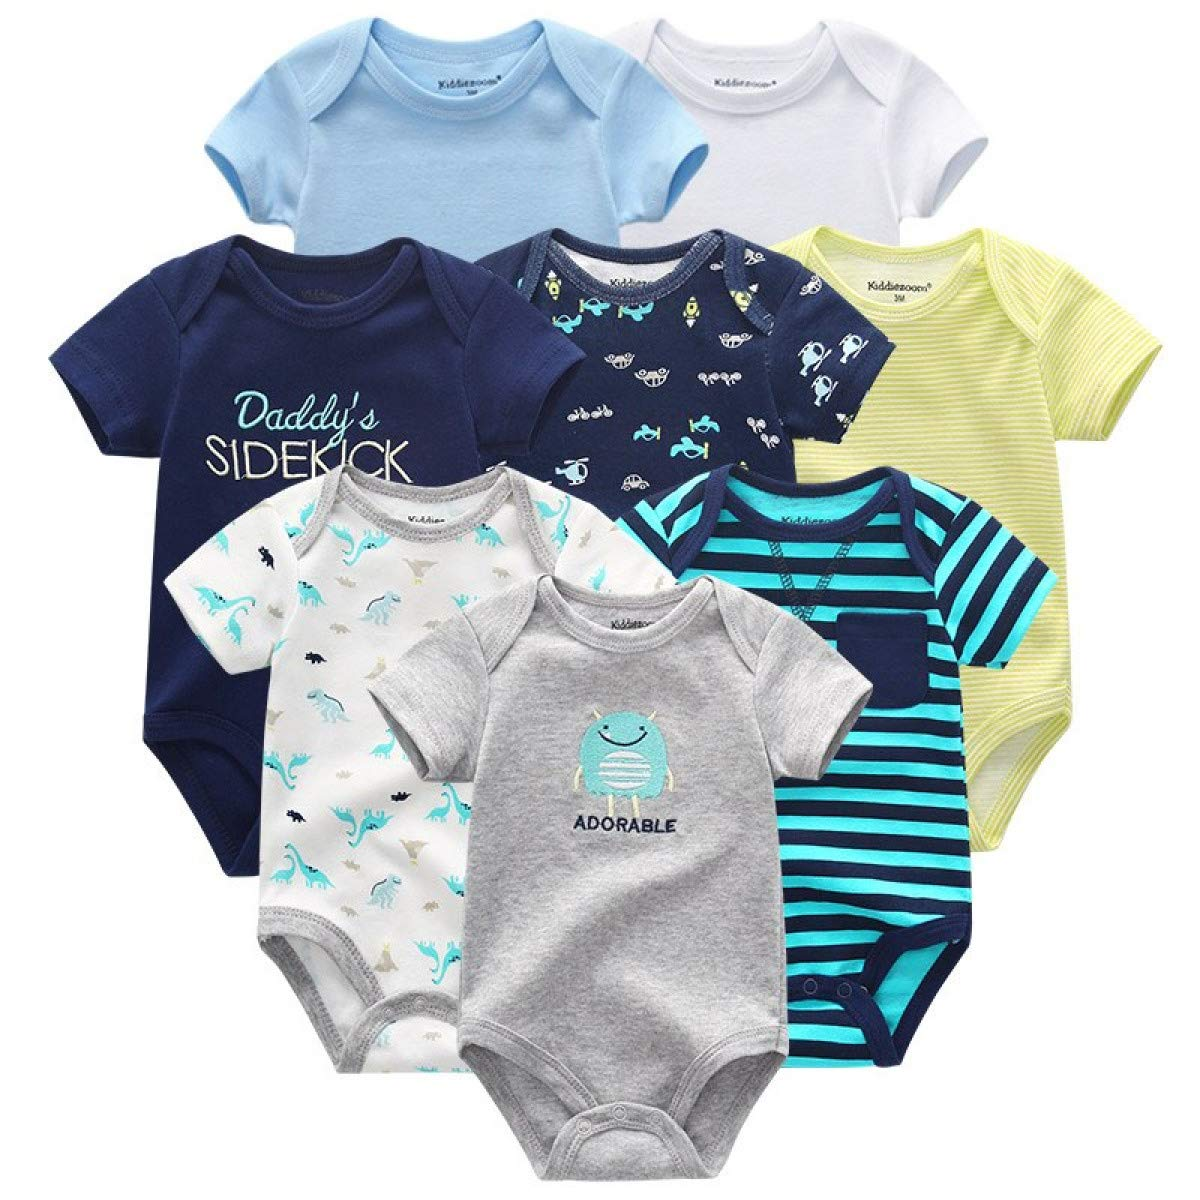 MELLOW SHOP 8PCS//Lot Girls Baby Clothing Bodysuits Baby Girl Clothes Cotton Boys Clothes Short